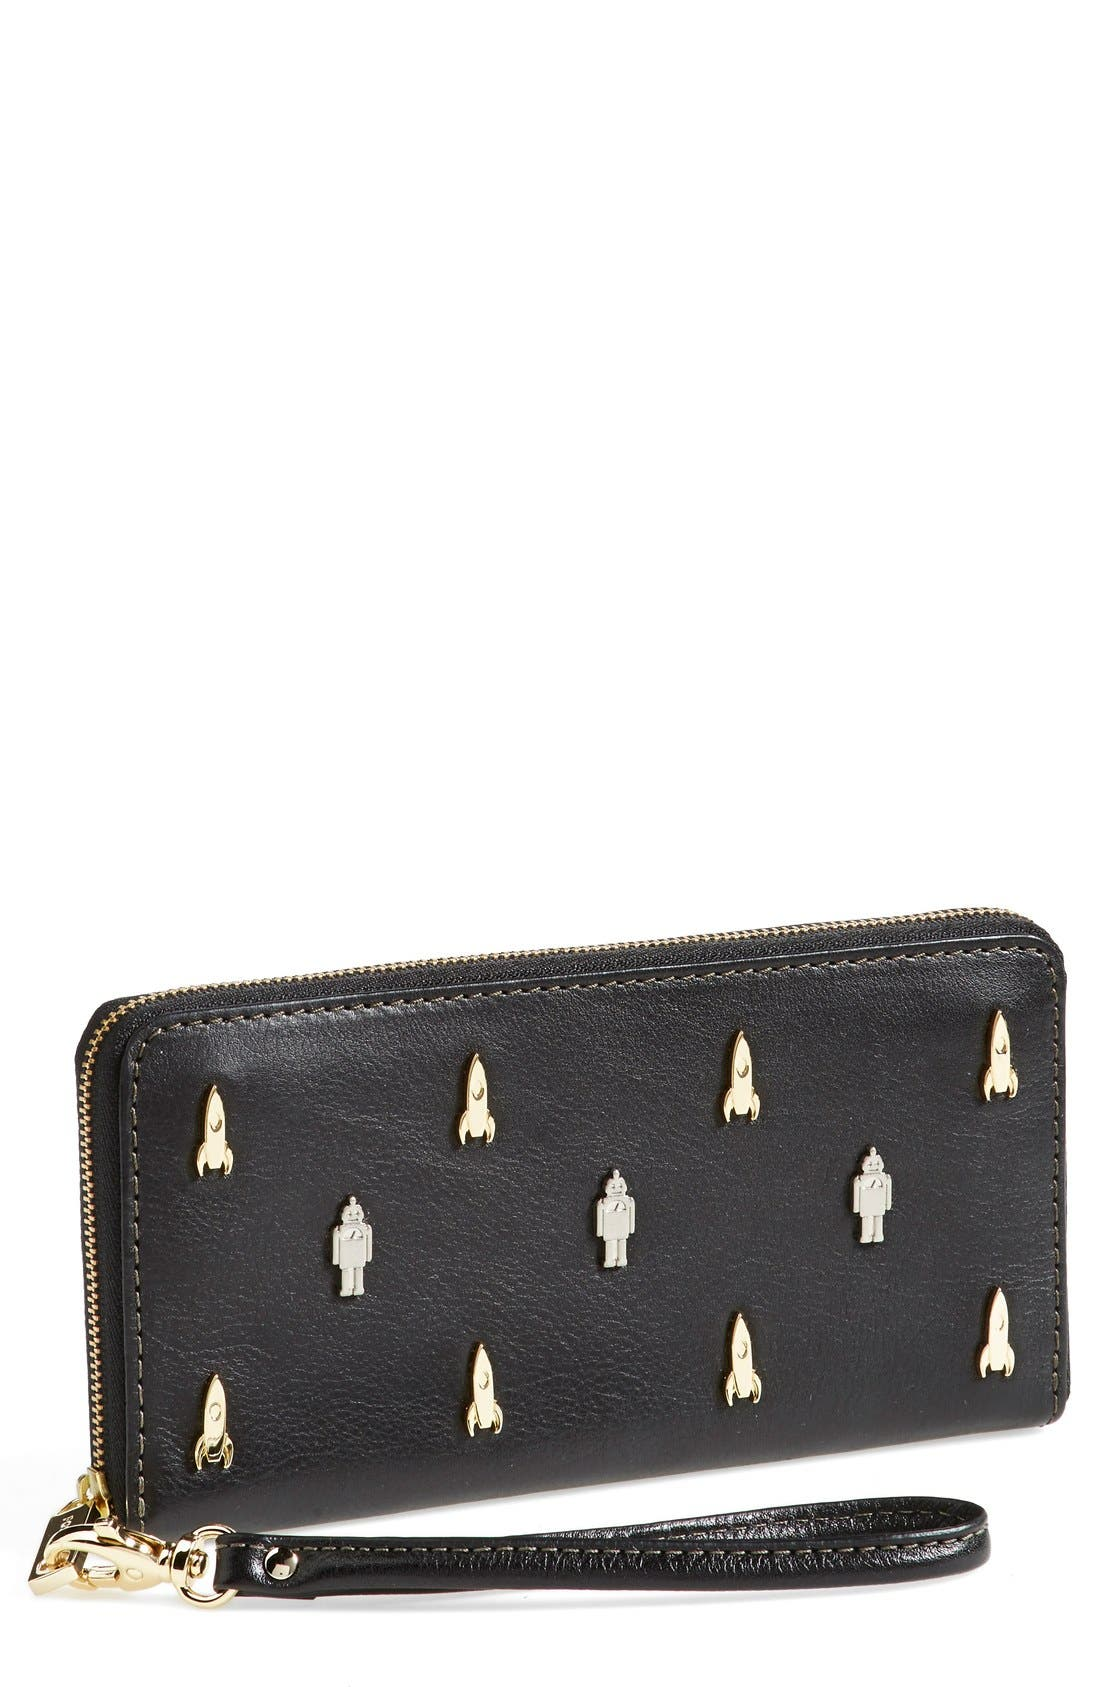 Alternate Image 1 Selected - Fossil Zip Clutch Wallet